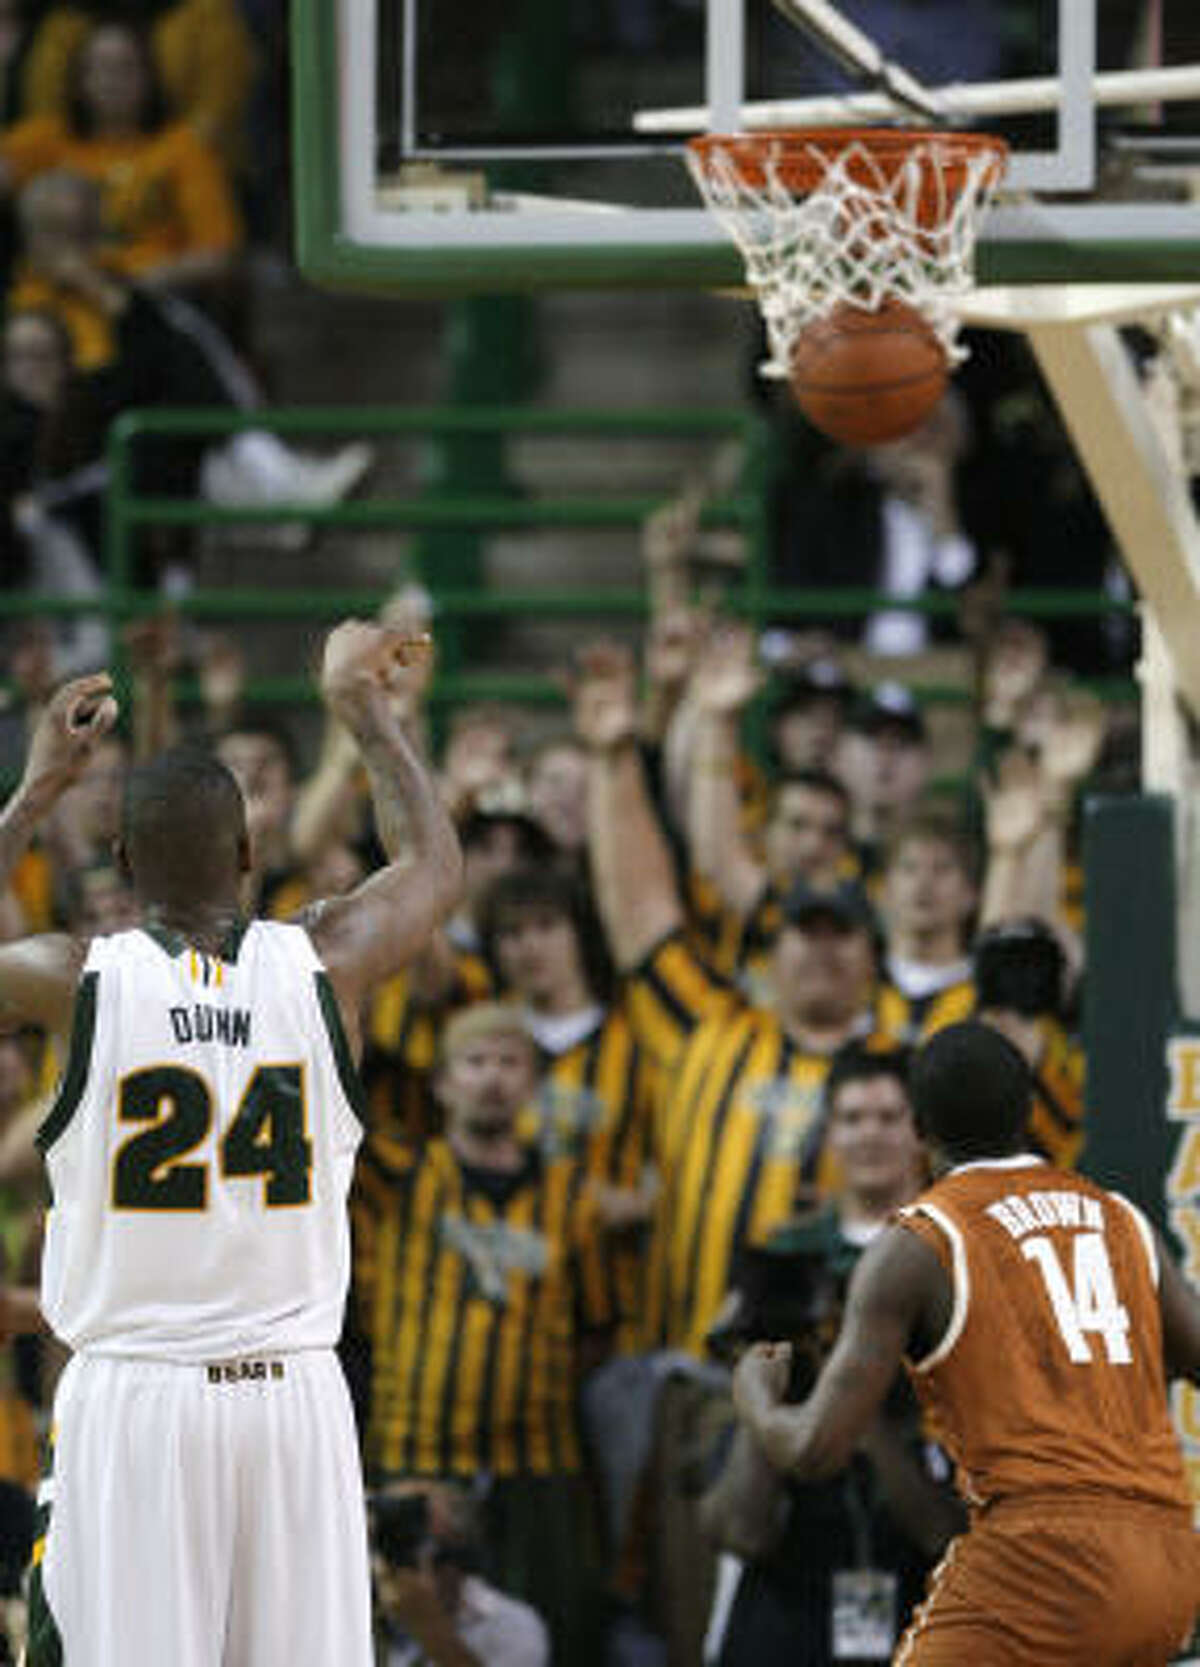 Baylor guard LaceDarius Dunn (24) makes a free throw as Texas' J'Covan Brown looks on in the first half. With the free throw, Dunn became the career scoring leader in Big 12 history, snapping Andre Emmett's mark of 2,256.